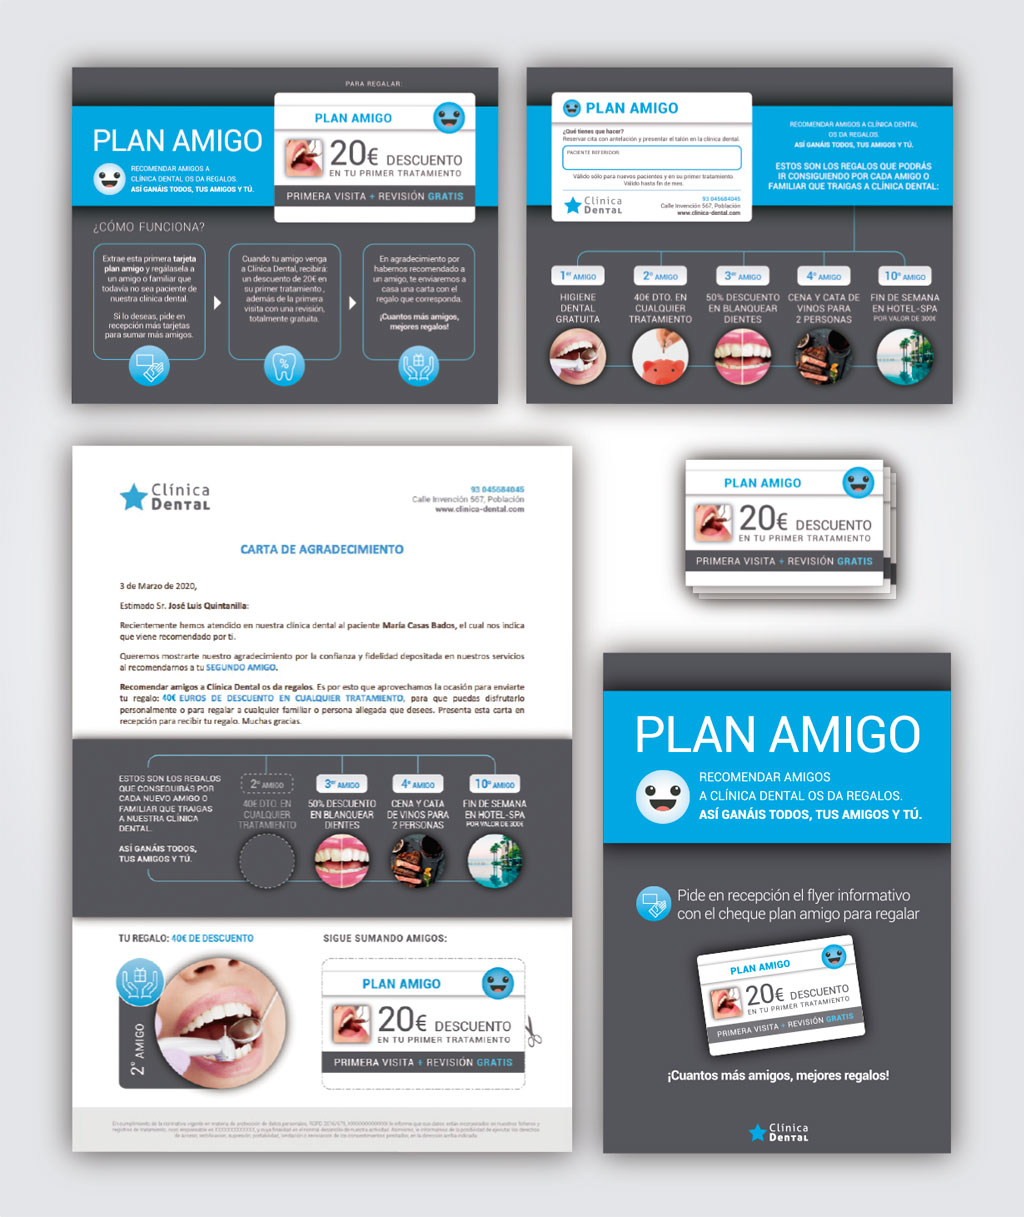 plan amigo clínica dental